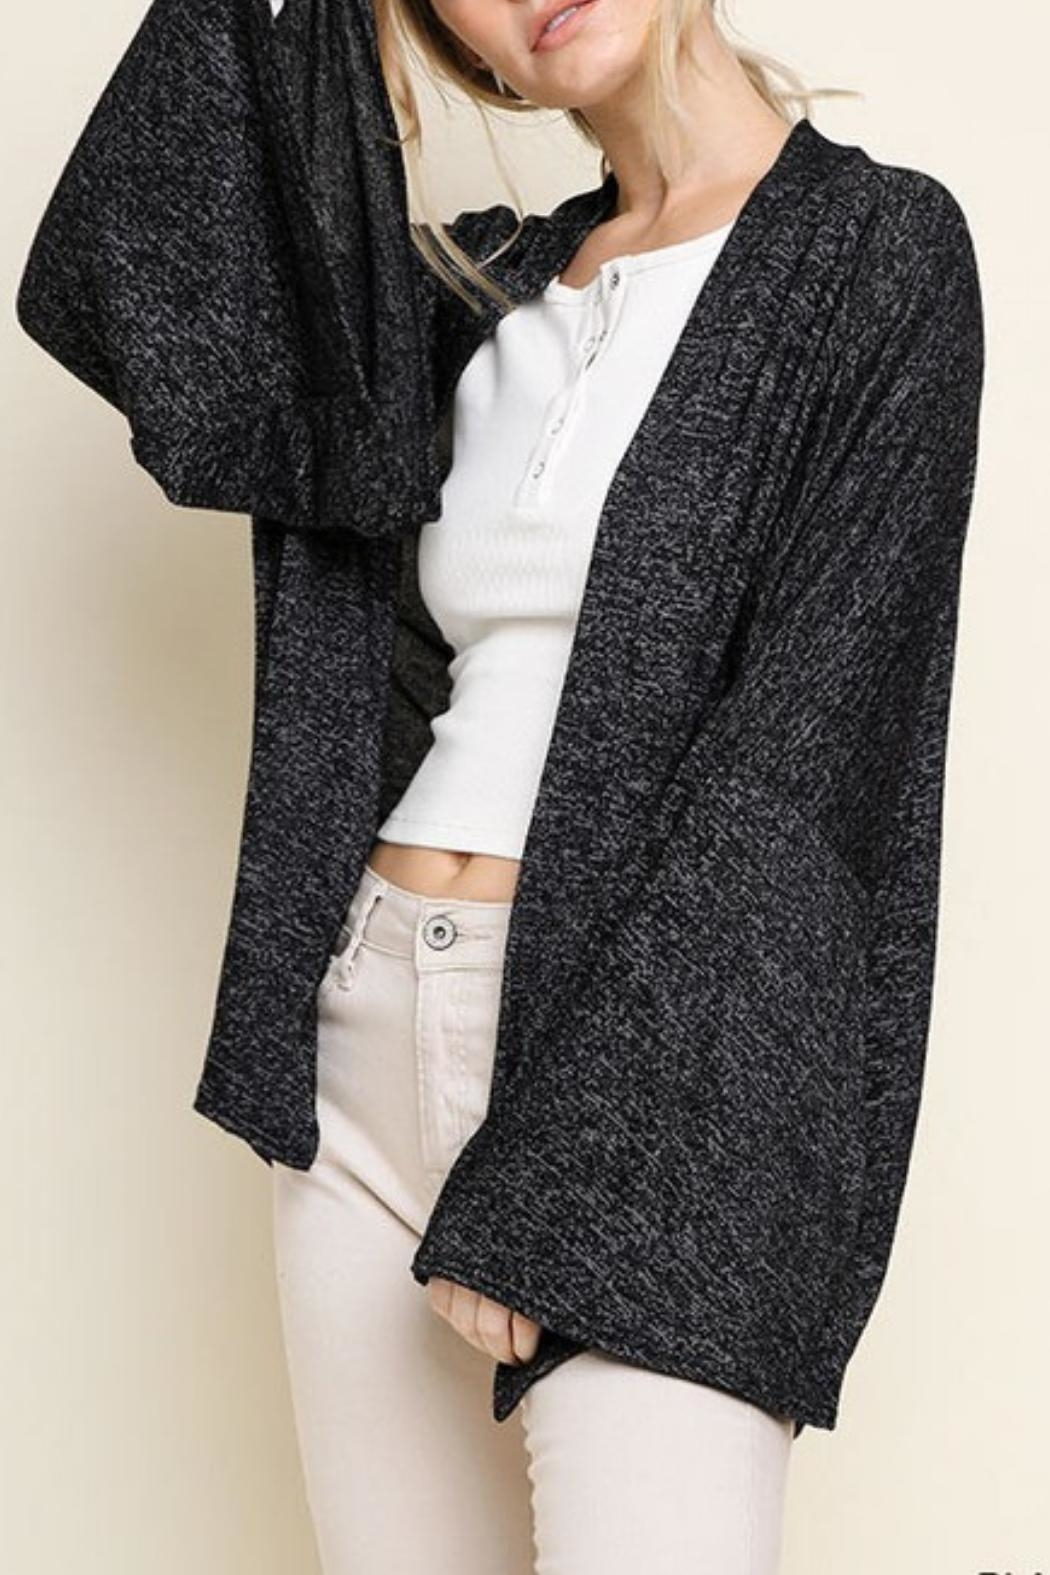 Umgee Usa Heathered Bell Sleeve Cardigan From Chicago By Chic